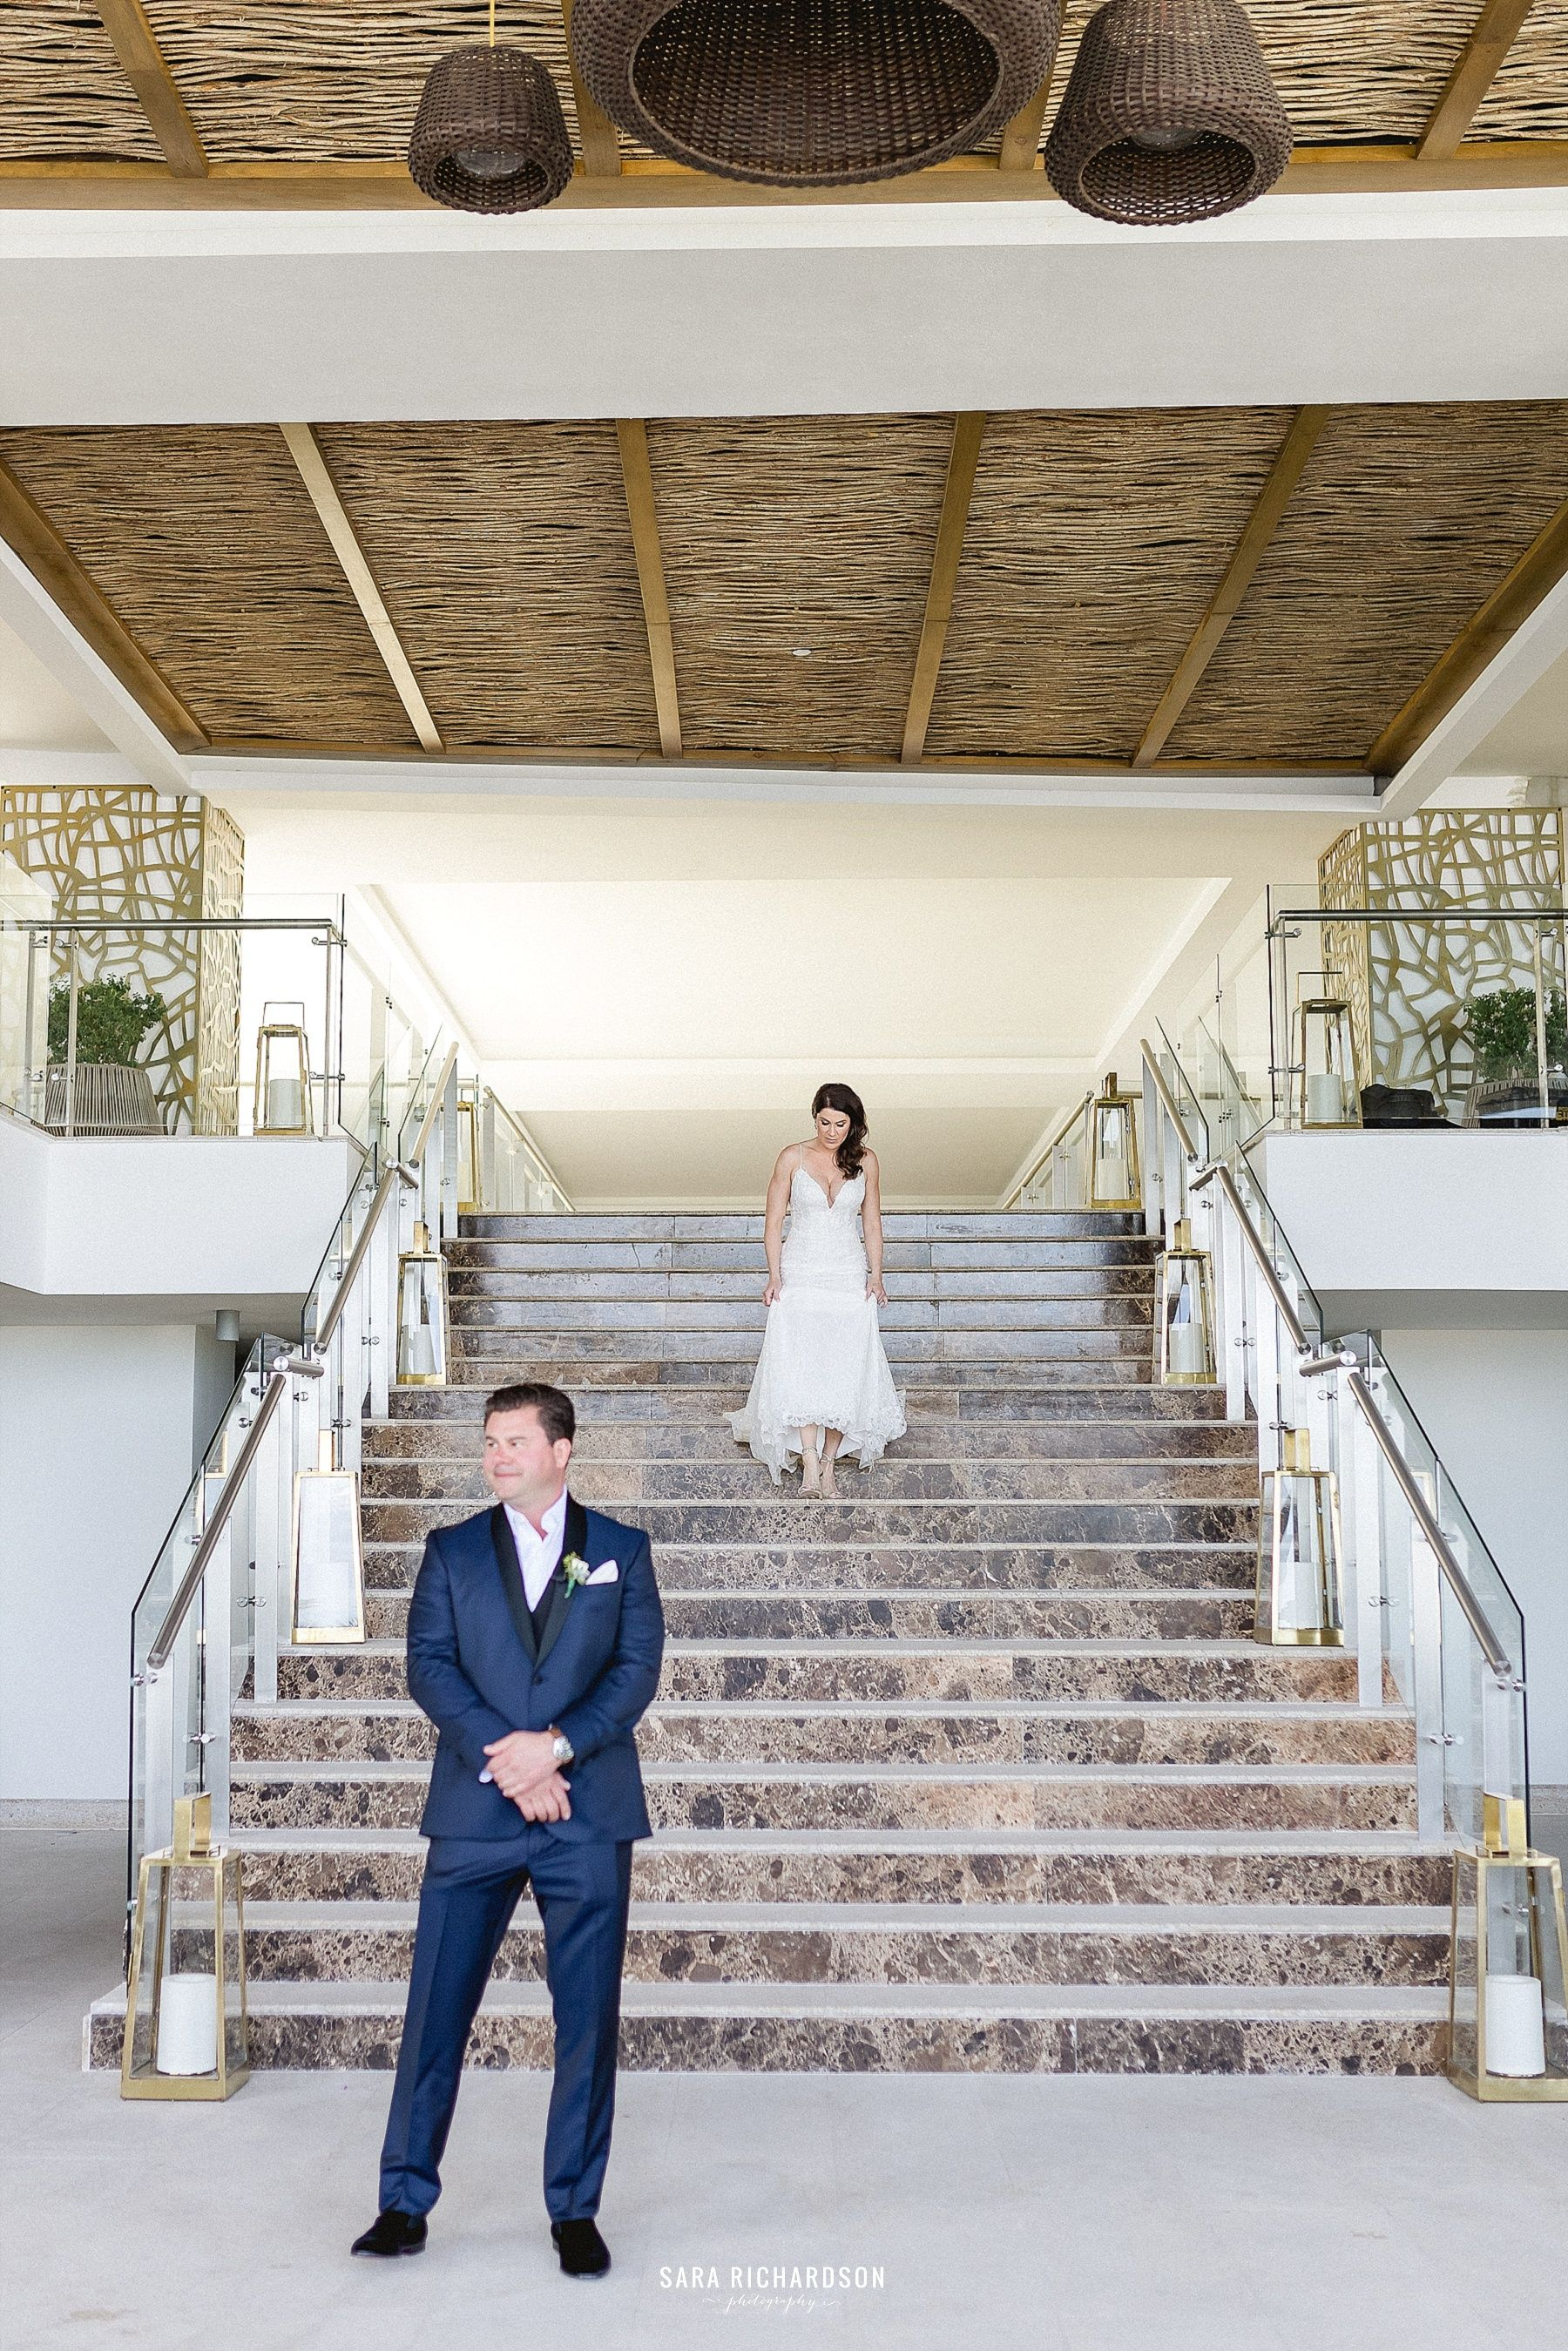 Our Bride and Groom decided to do a First Look right before the ceremony to get some more special moments before their wedding ceremony. They had such a great time doing this, and they both looked amazing! Thank you to Jimmy Choo shoes for making our Bride look amazing and making her legs look beautiful as she was walking down the stairs to do her first look!